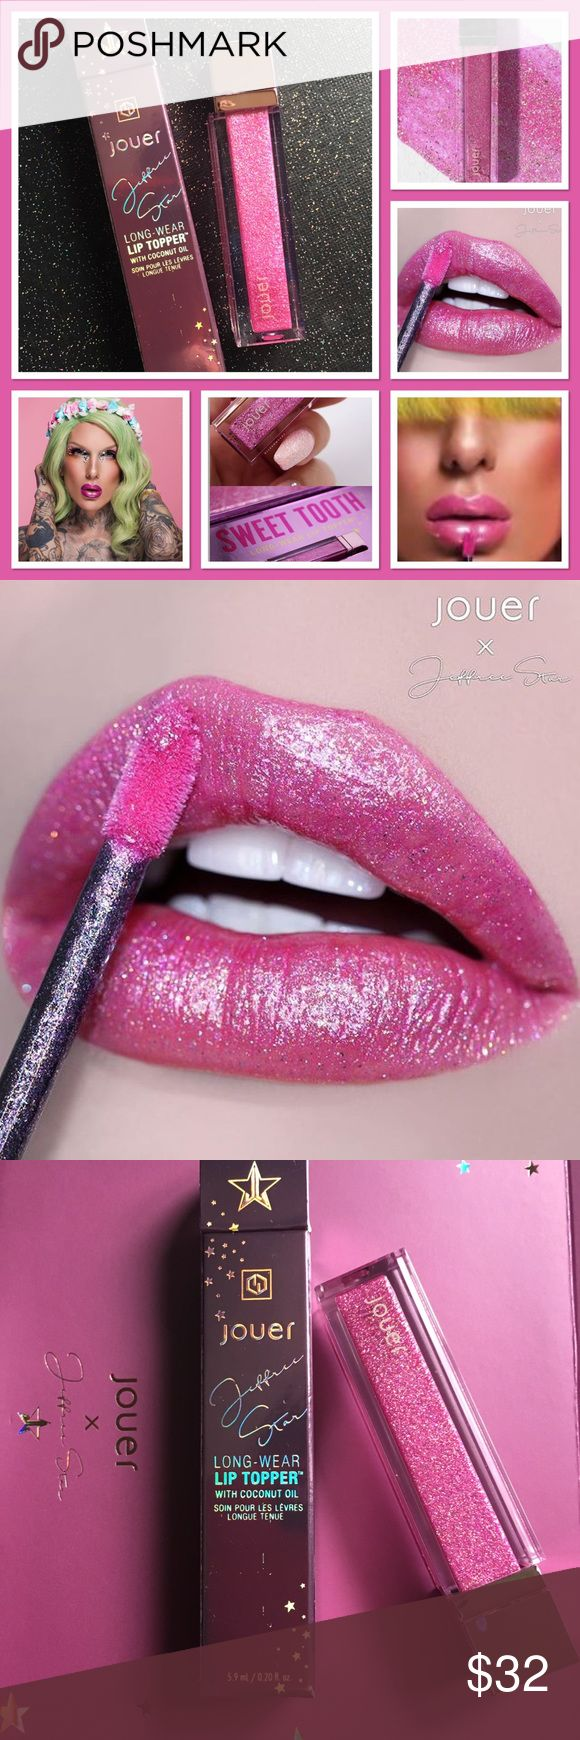 Jeffree Star Lip Topper Sweet Tooth New in box • Free Shipping • Limited Edition  Sweet Tooth Lip Topper tastes like cupcakes! Pink with sparkles. Gorgeous!! Sephora Makeup Lip Balm & Gloss